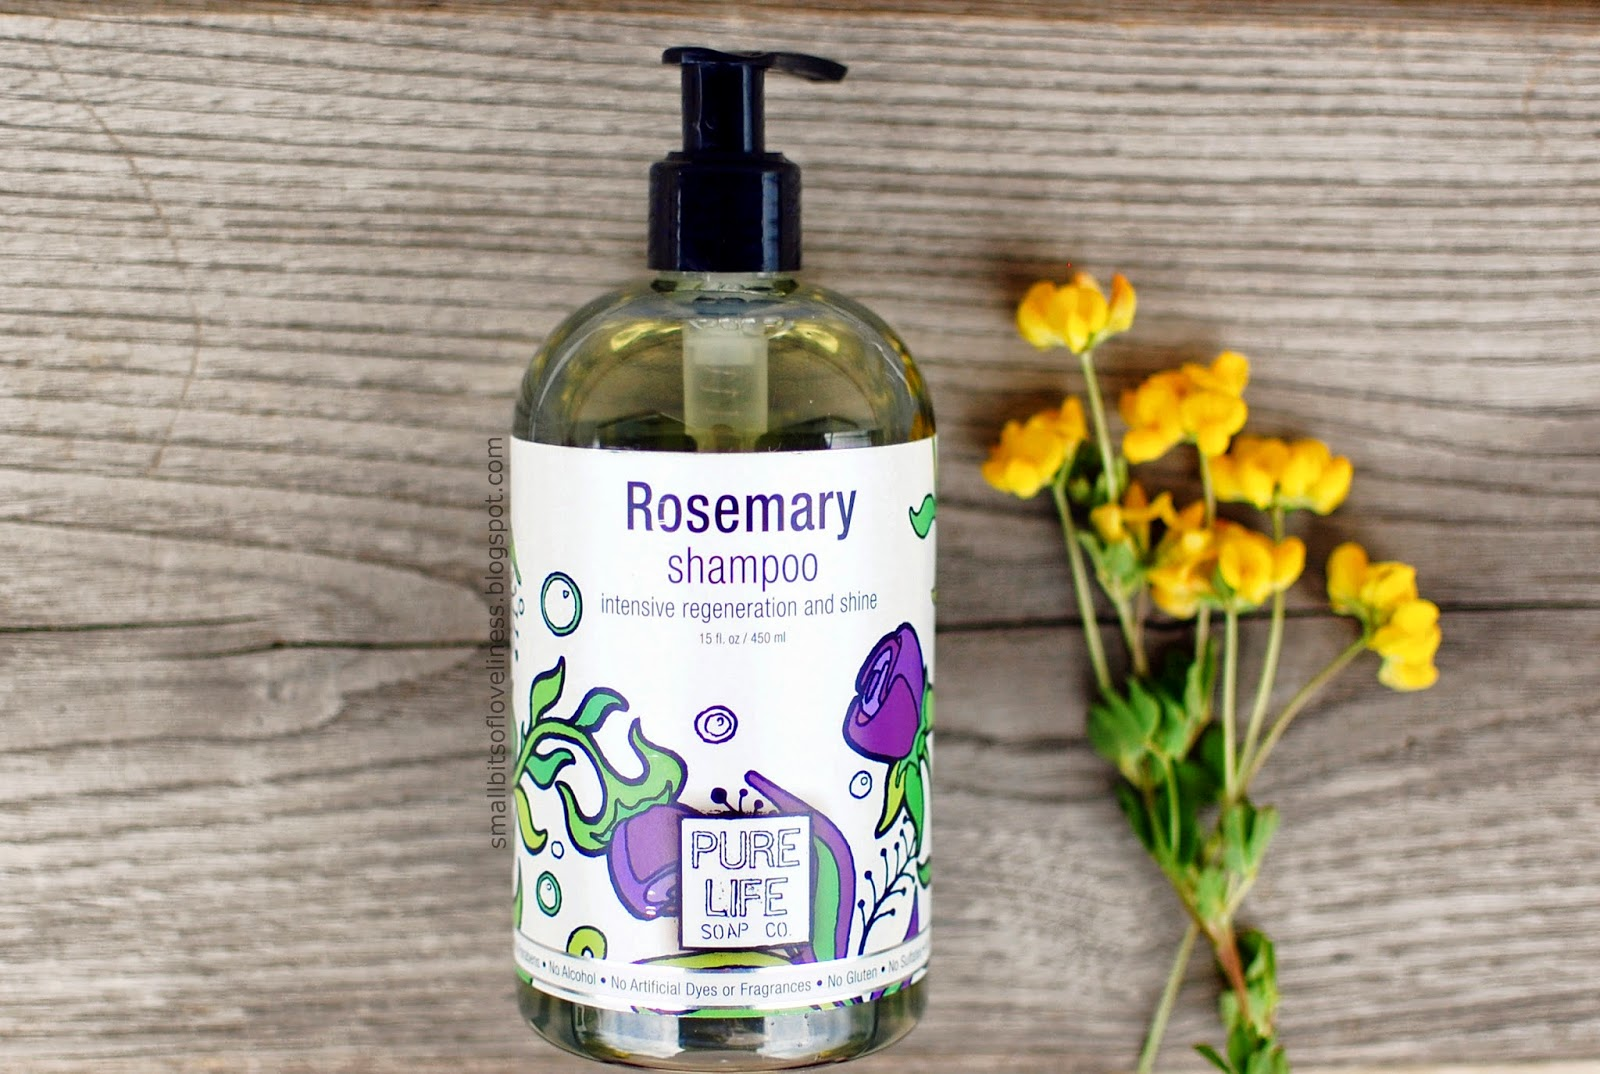 Pure Life Soap Rosemary Shampoo, Natural No Gluten, Sulfates, Cruelty Free